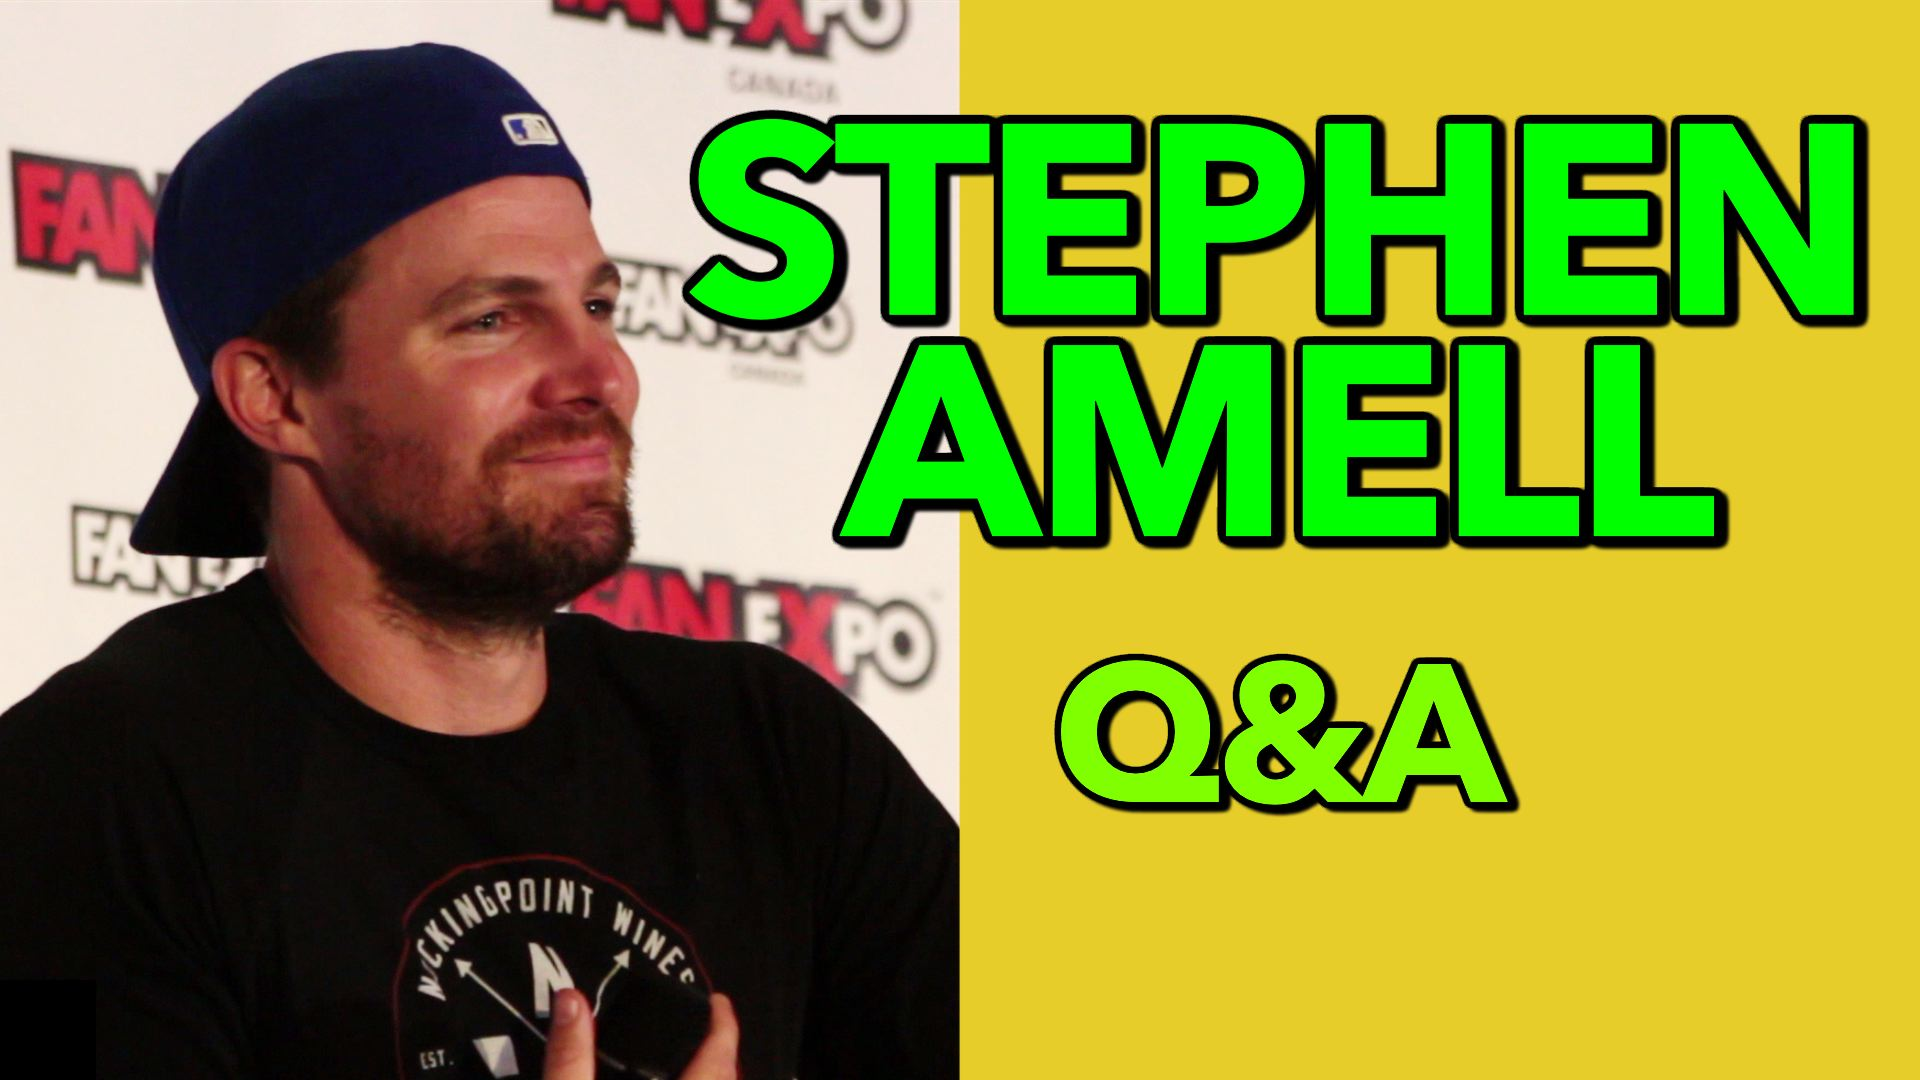 Stephen Amell (ARROW) Q&A at Fan Expo Canada